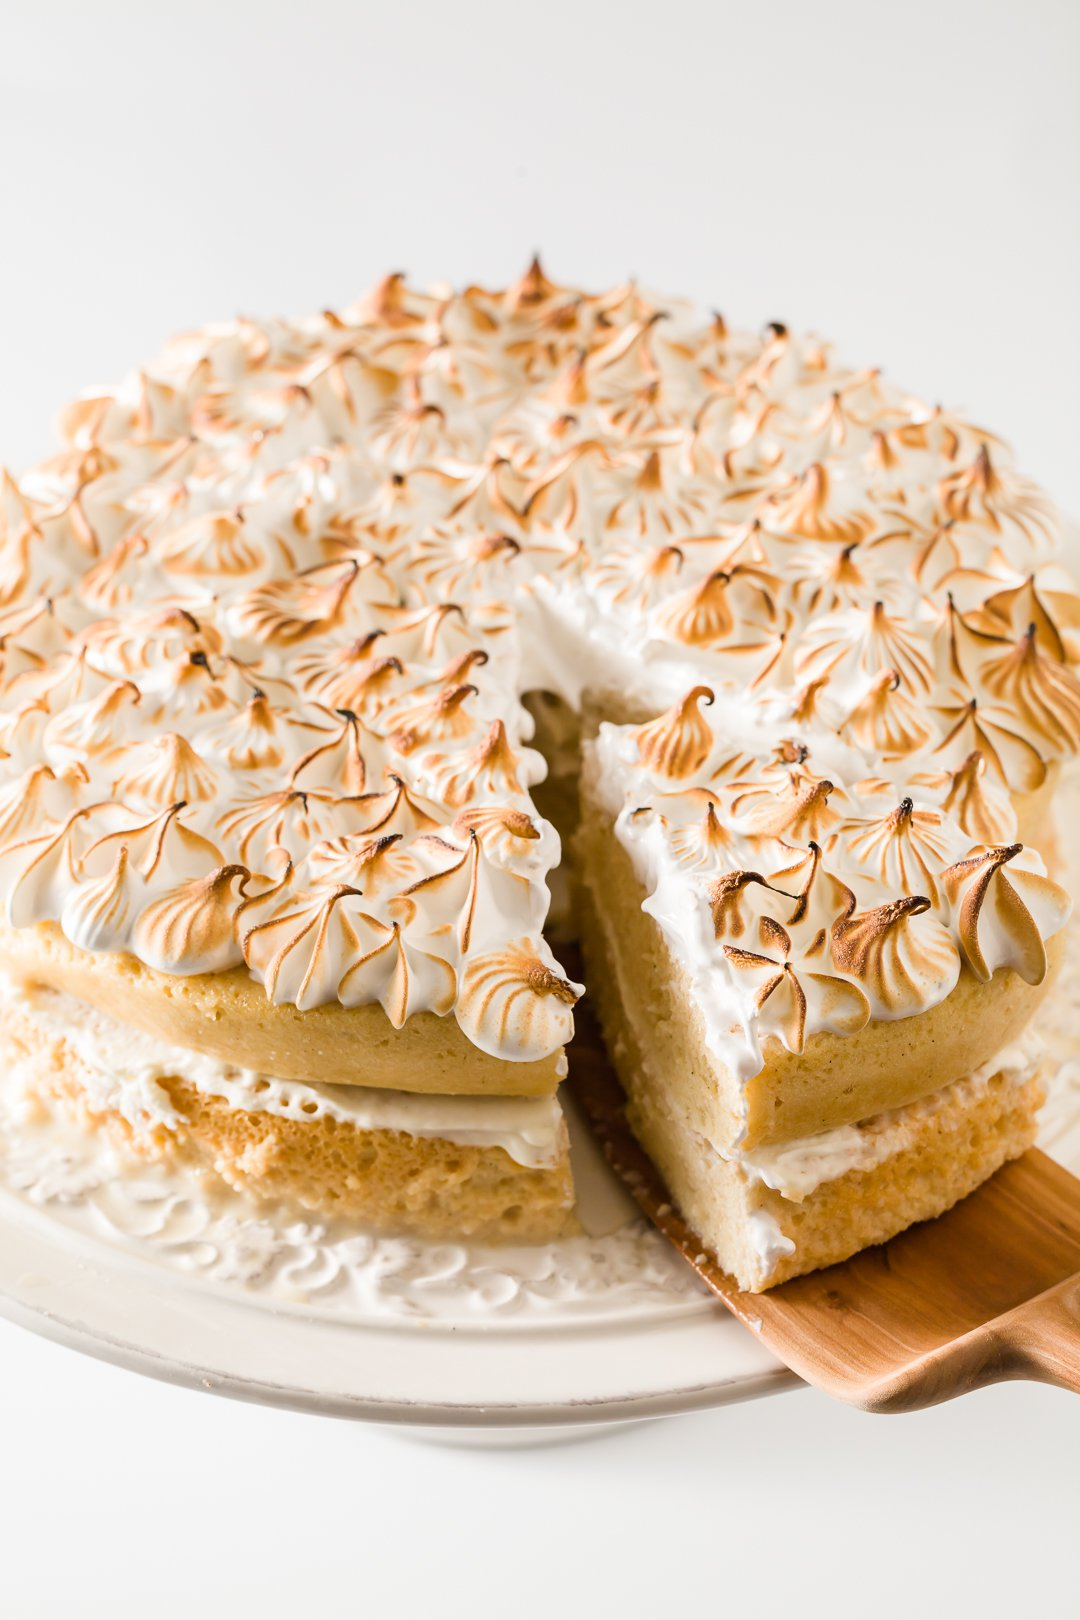 Pressure cooker tres leches cake with a slice on a cake server